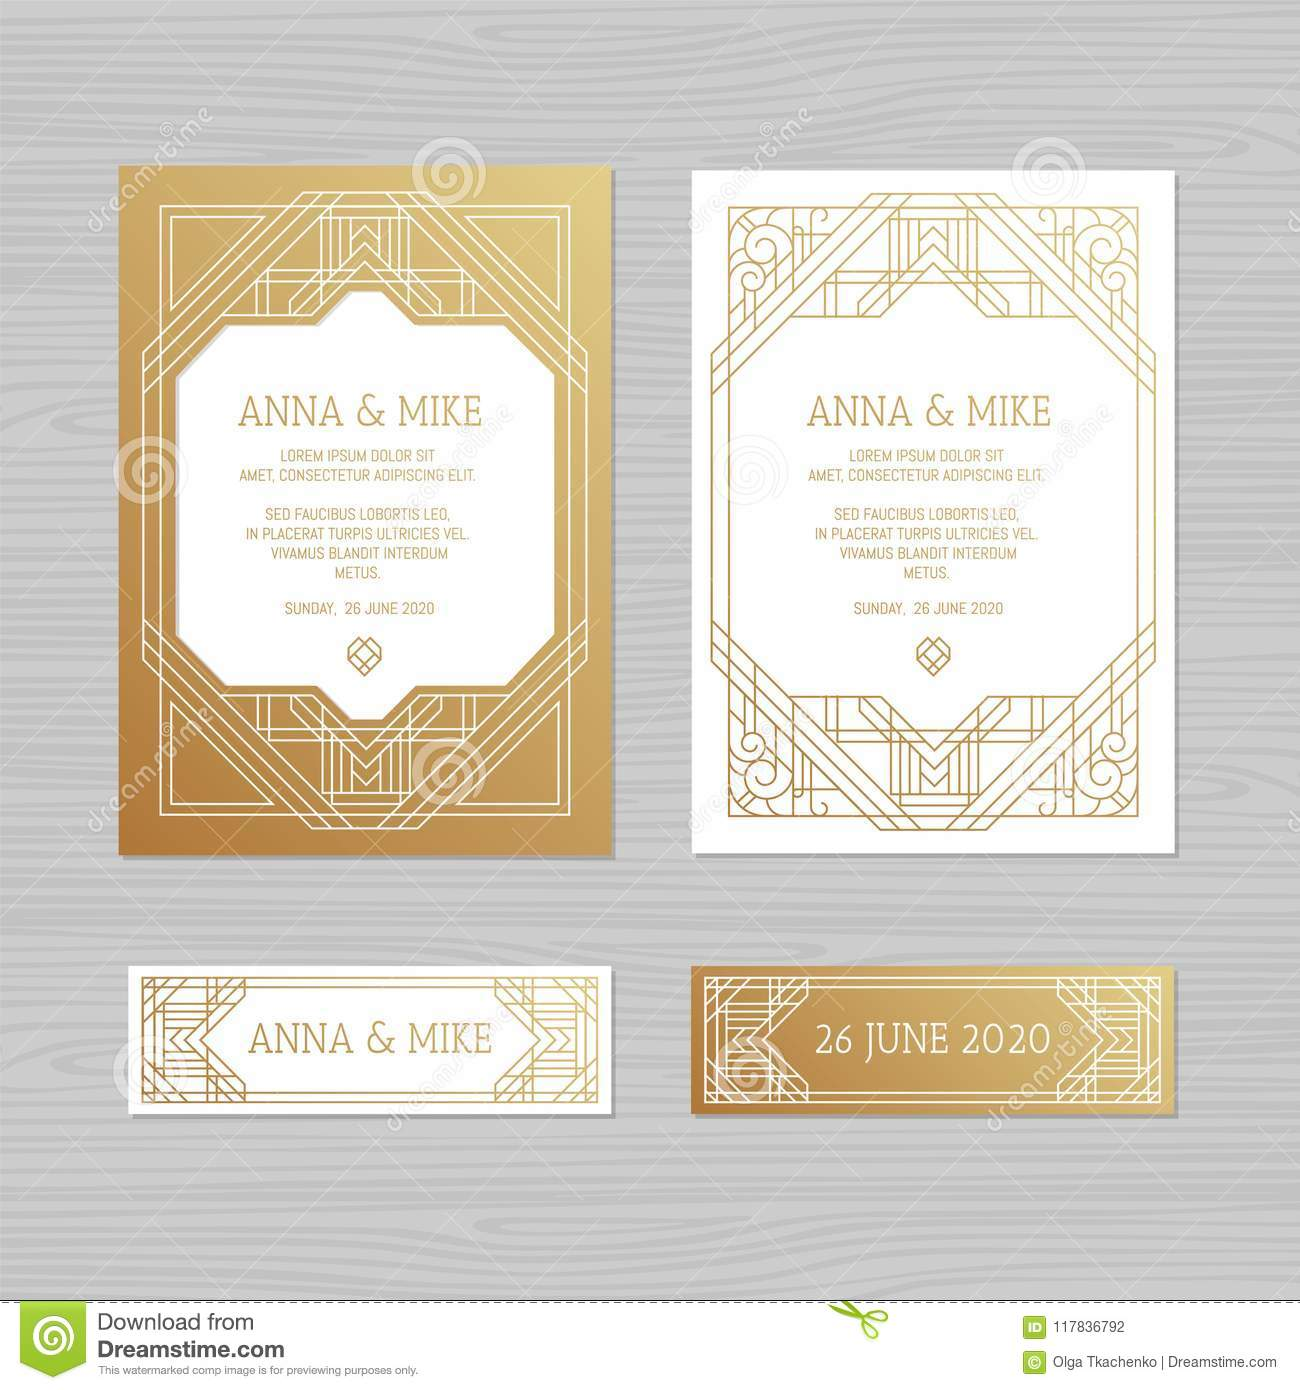 Luxury Wedding Invitation Or Greeting Card With Geometric Ornament Art Deco Style Paper Envelope Template Mockup For Laser: 1920s Wedding Invitation Clip Art At Reisefeber.org